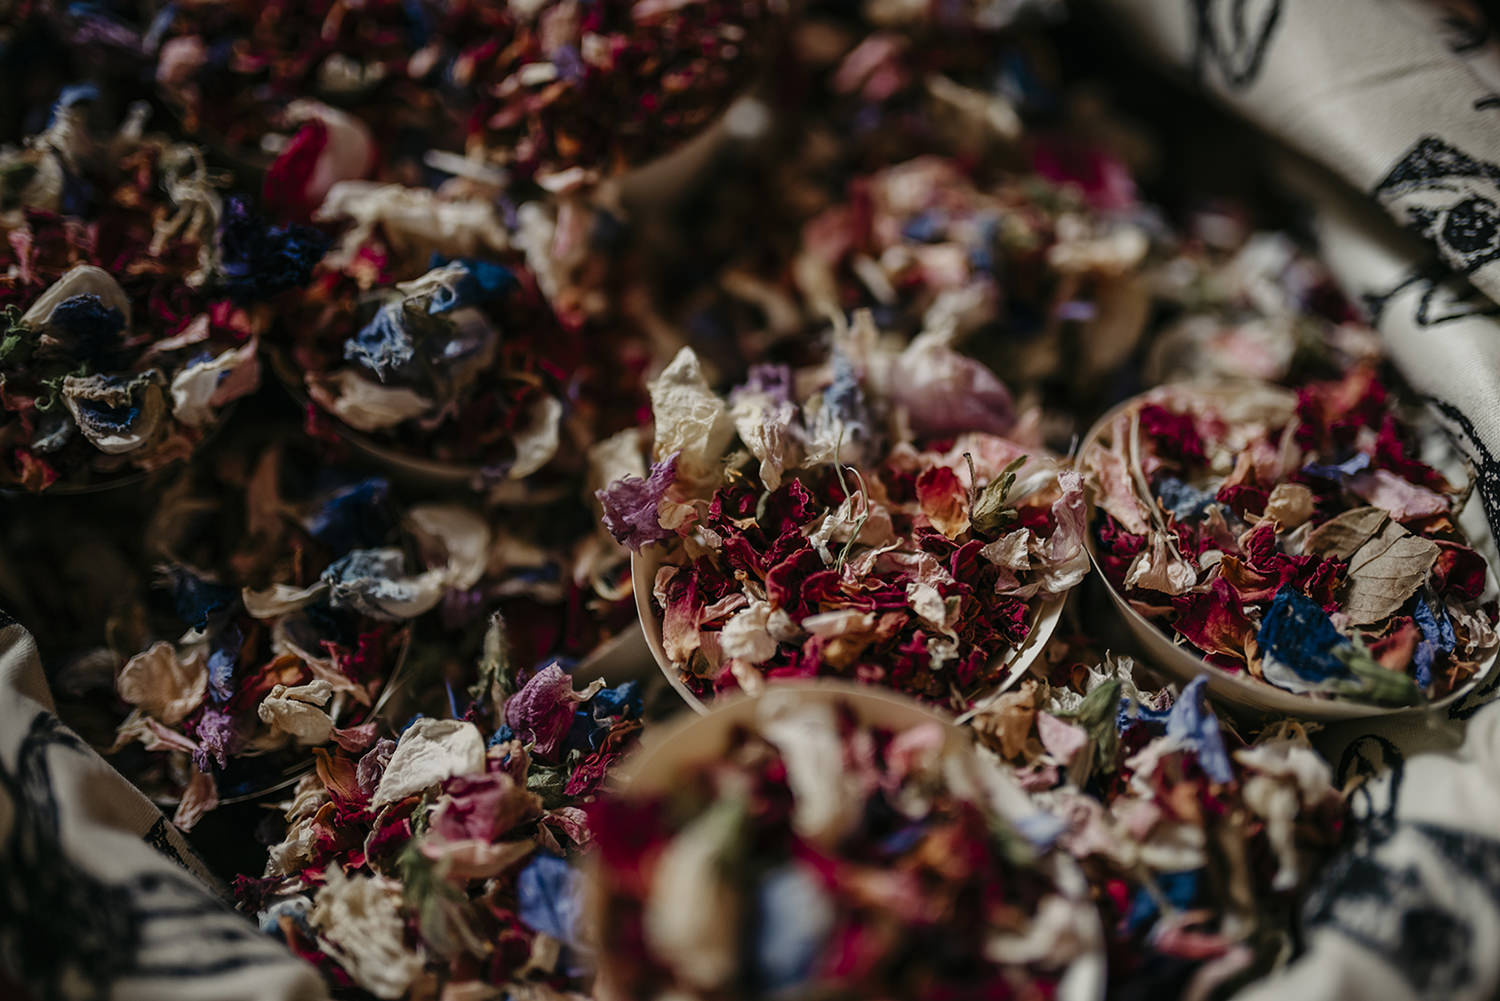 Dried petals as confetti